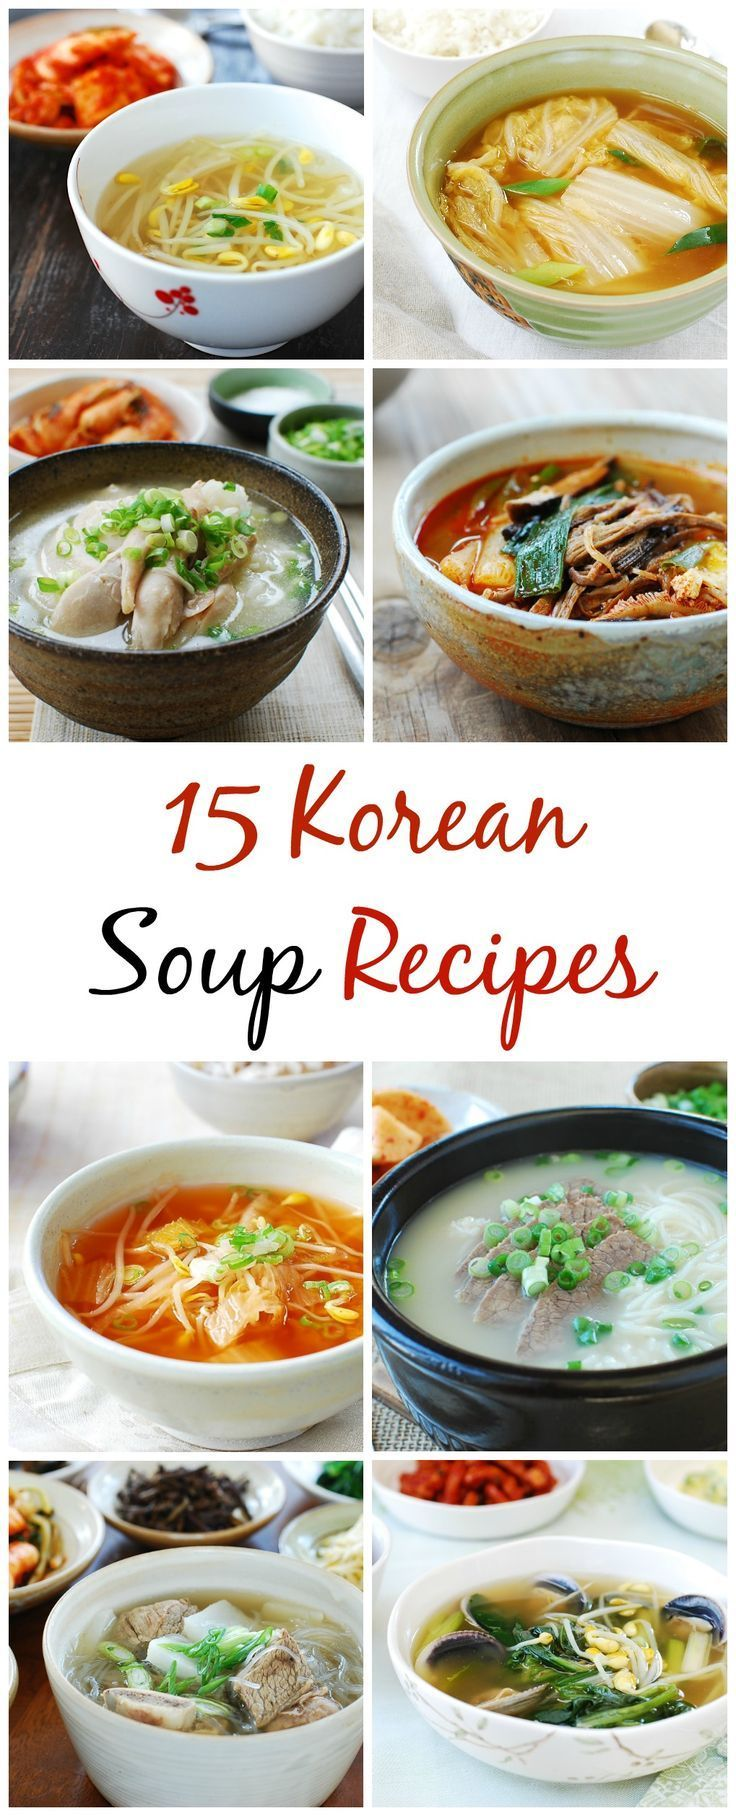 15 Korean Soup Recipes - Korean Bapsang